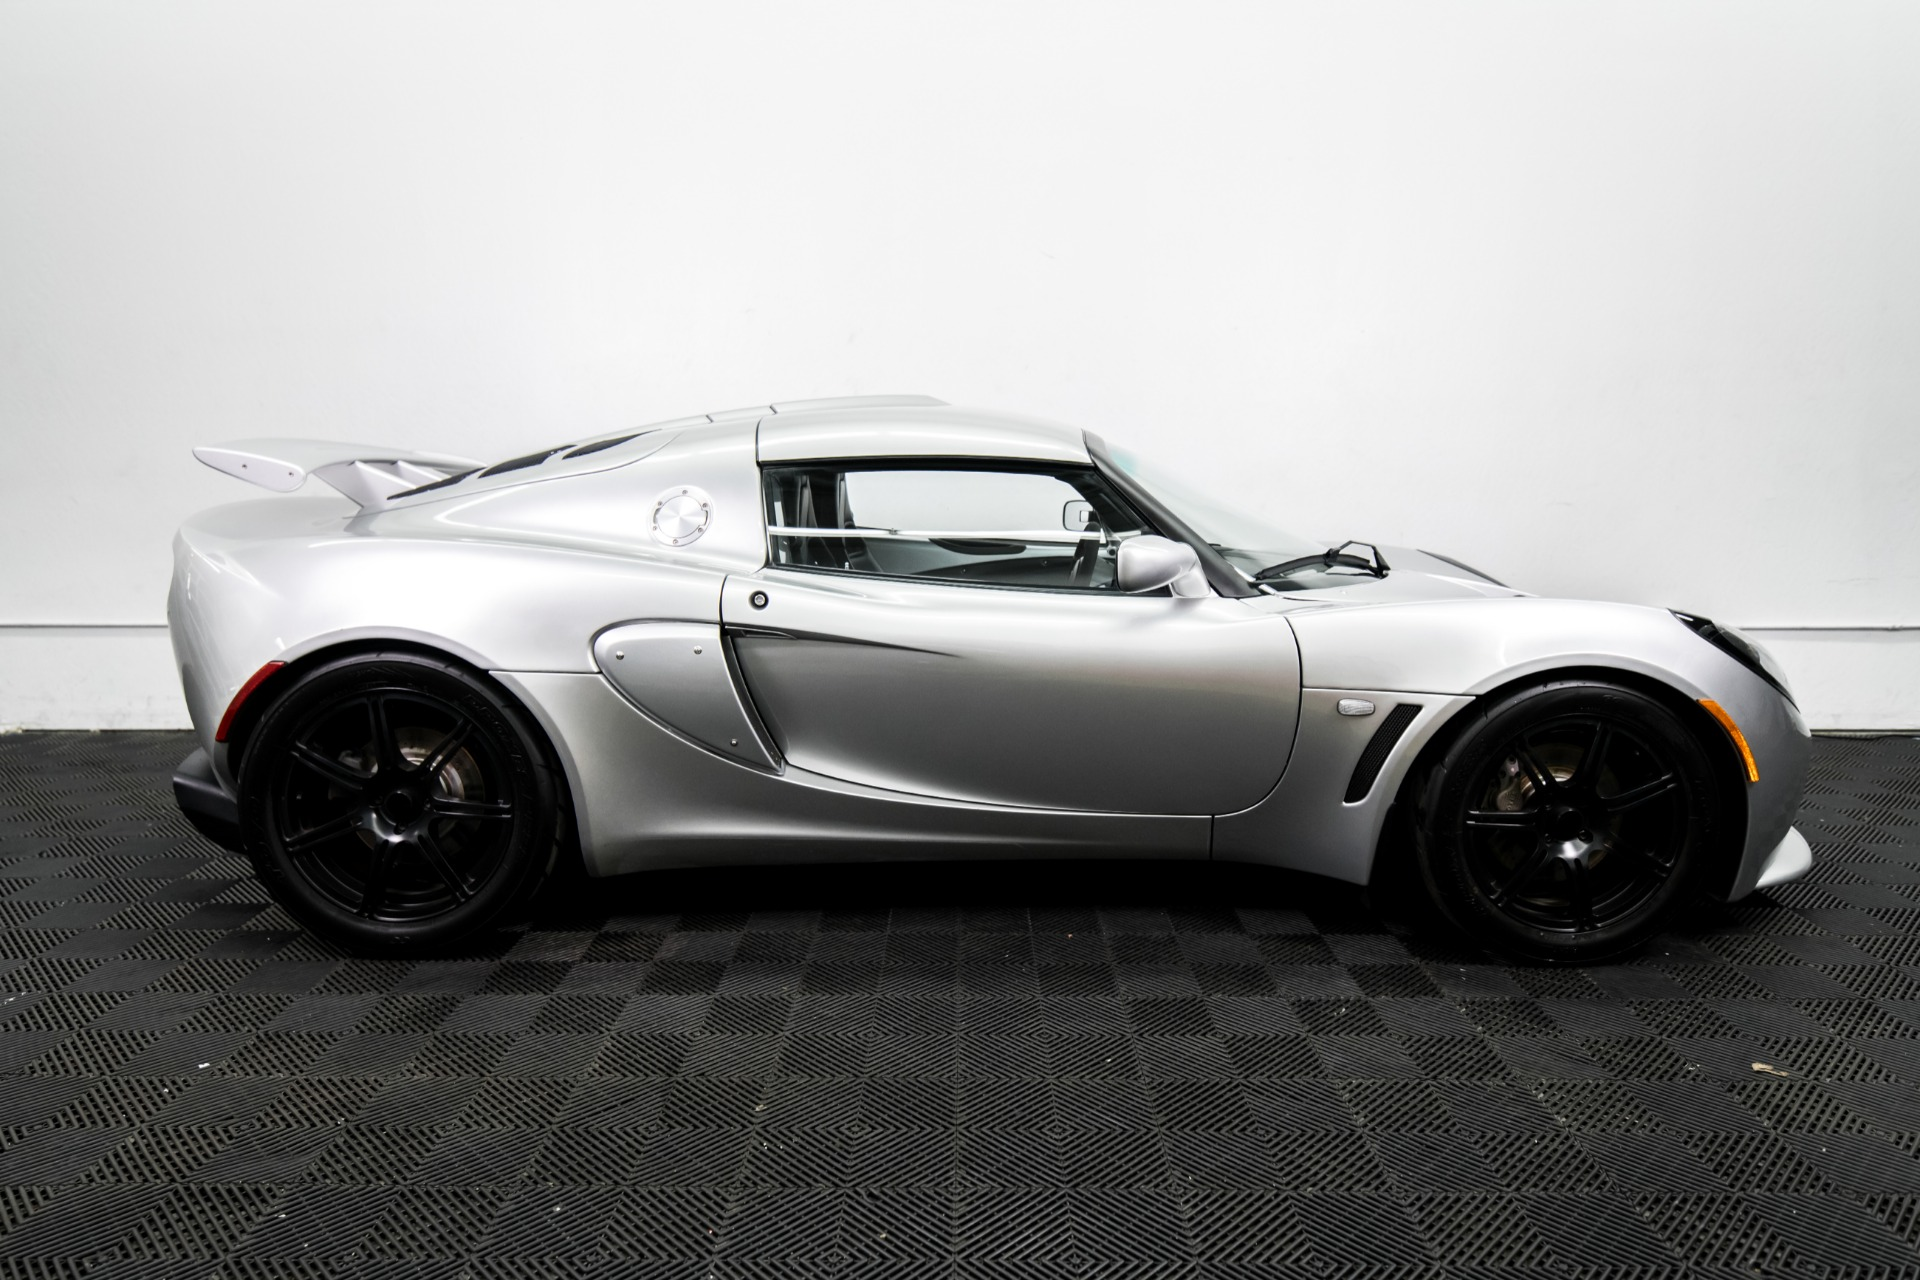 Used 2006 Lotus Exige Used 2006 Lotus Exige for sale Sold at Response Motors in Mountain View CA 5